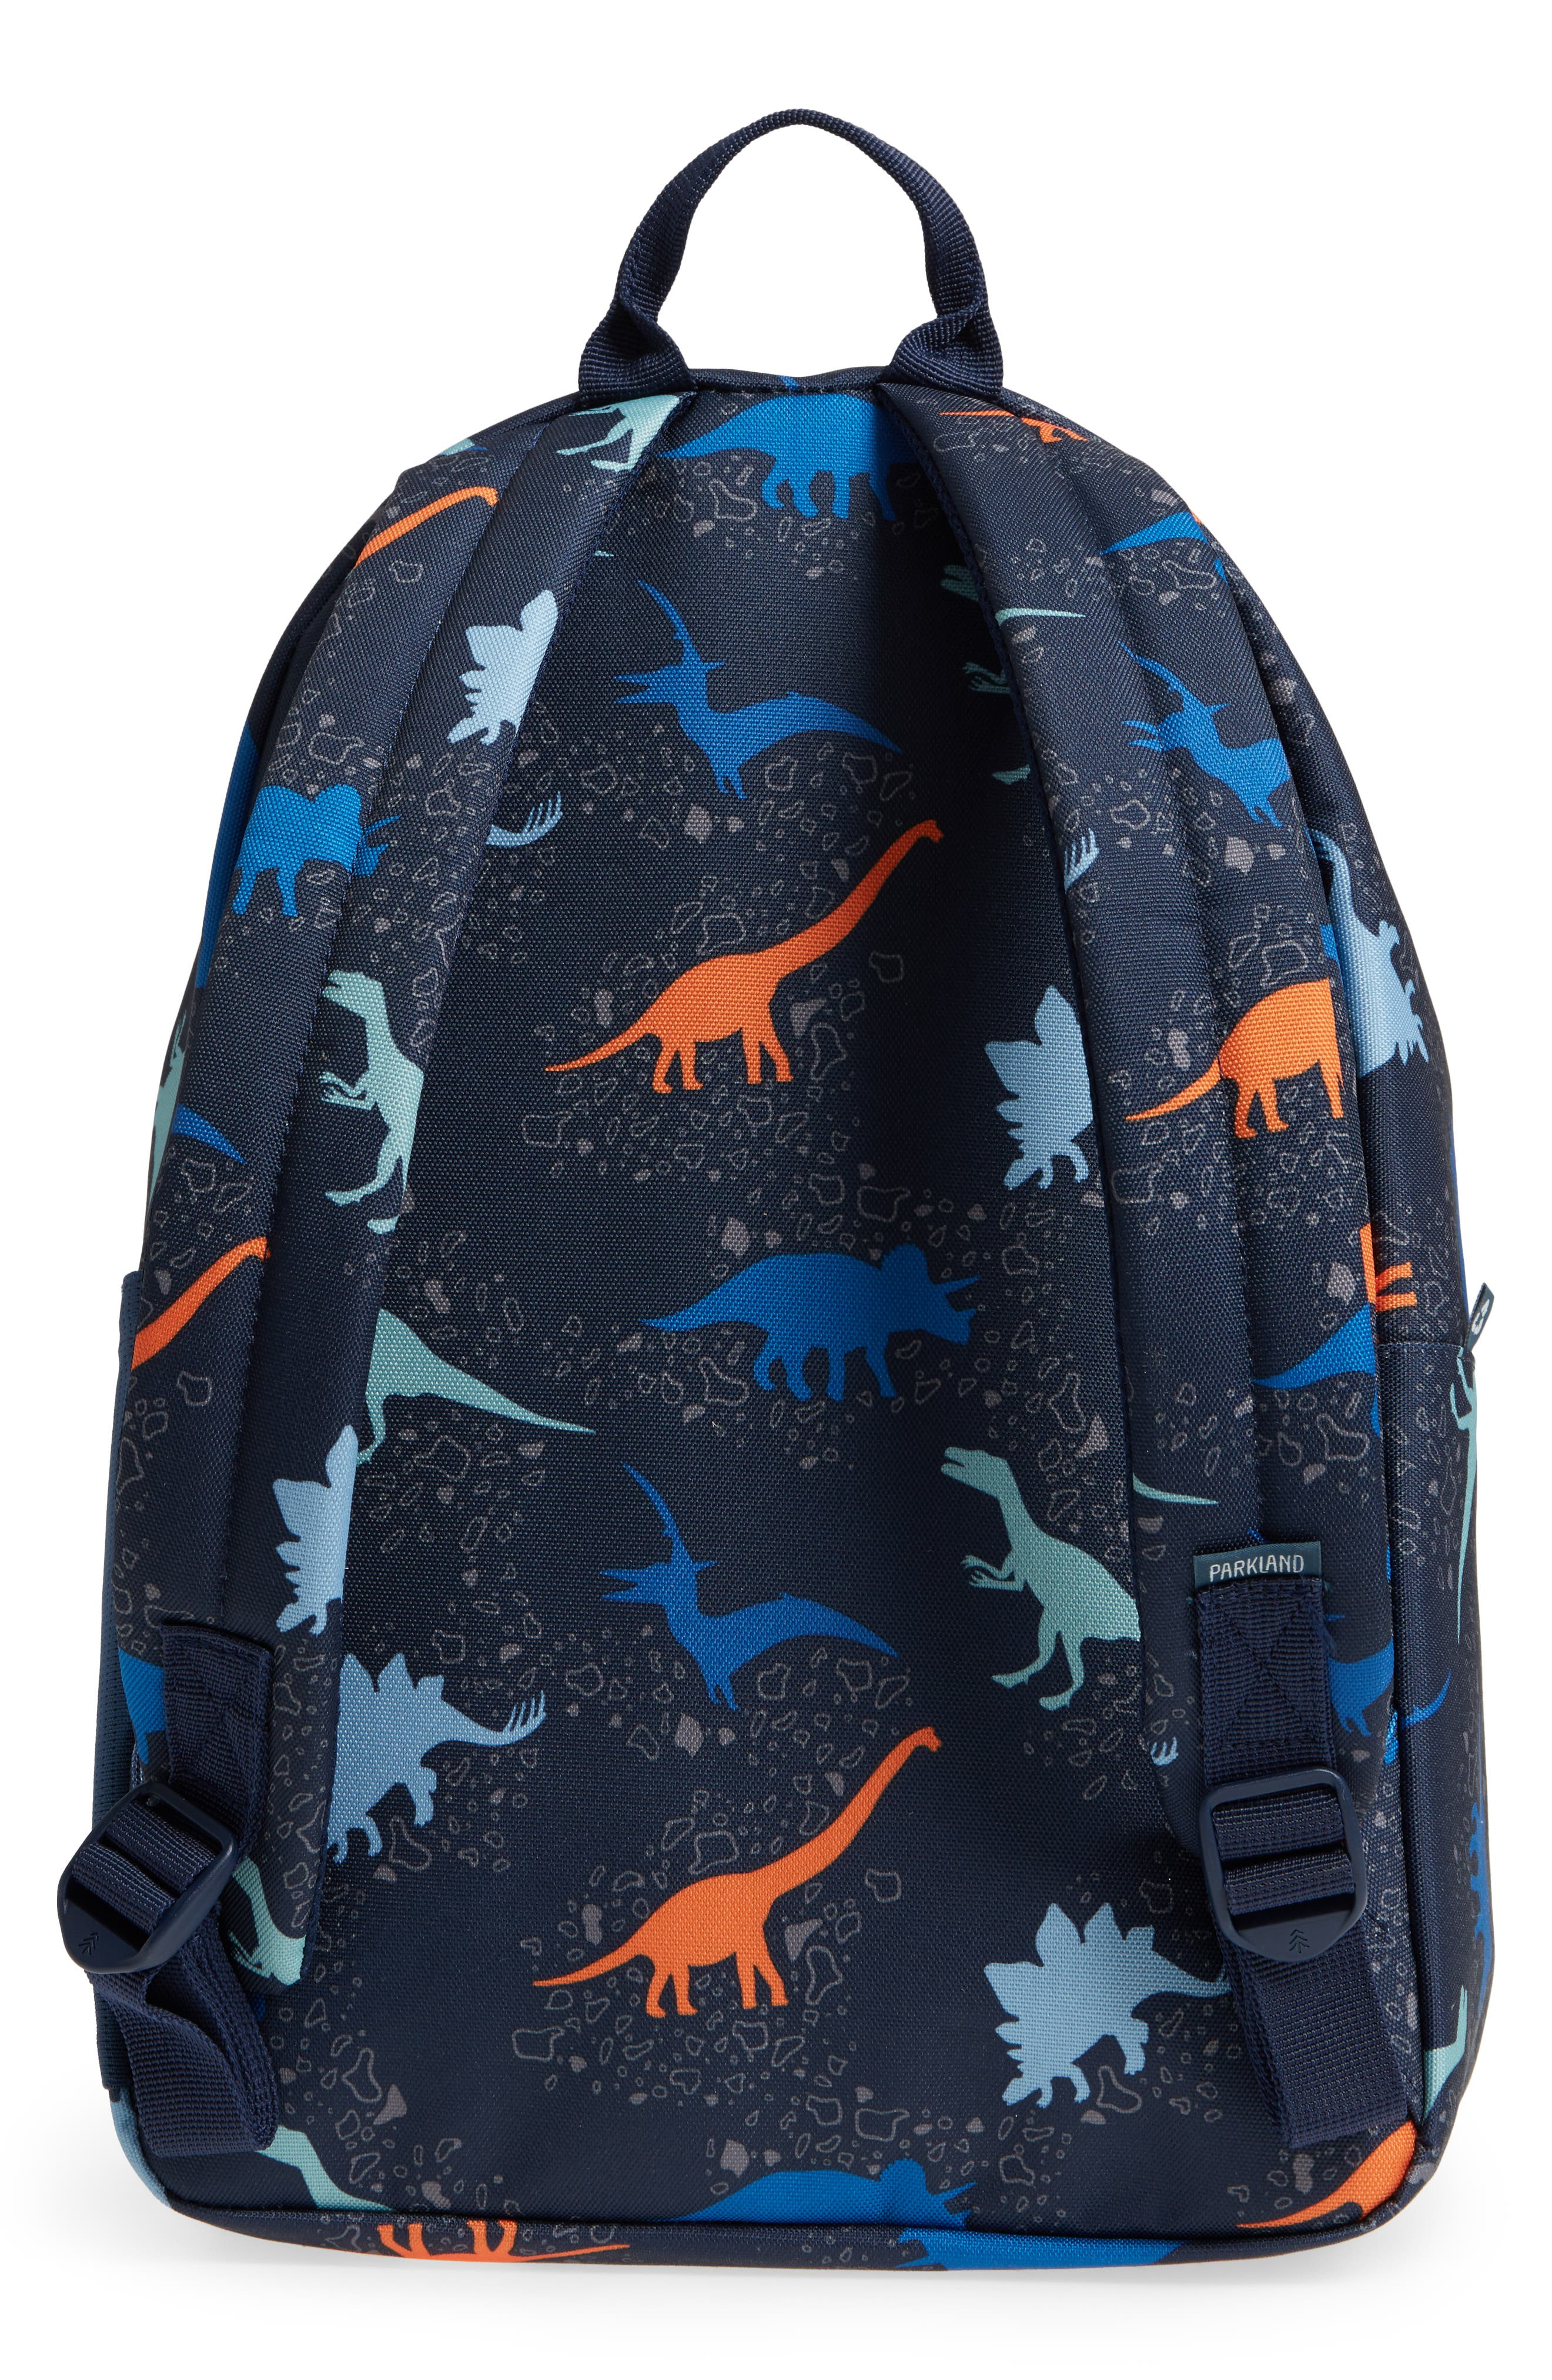 Bayside Print Backpack,                             Alternate thumbnail 2, color,                             200